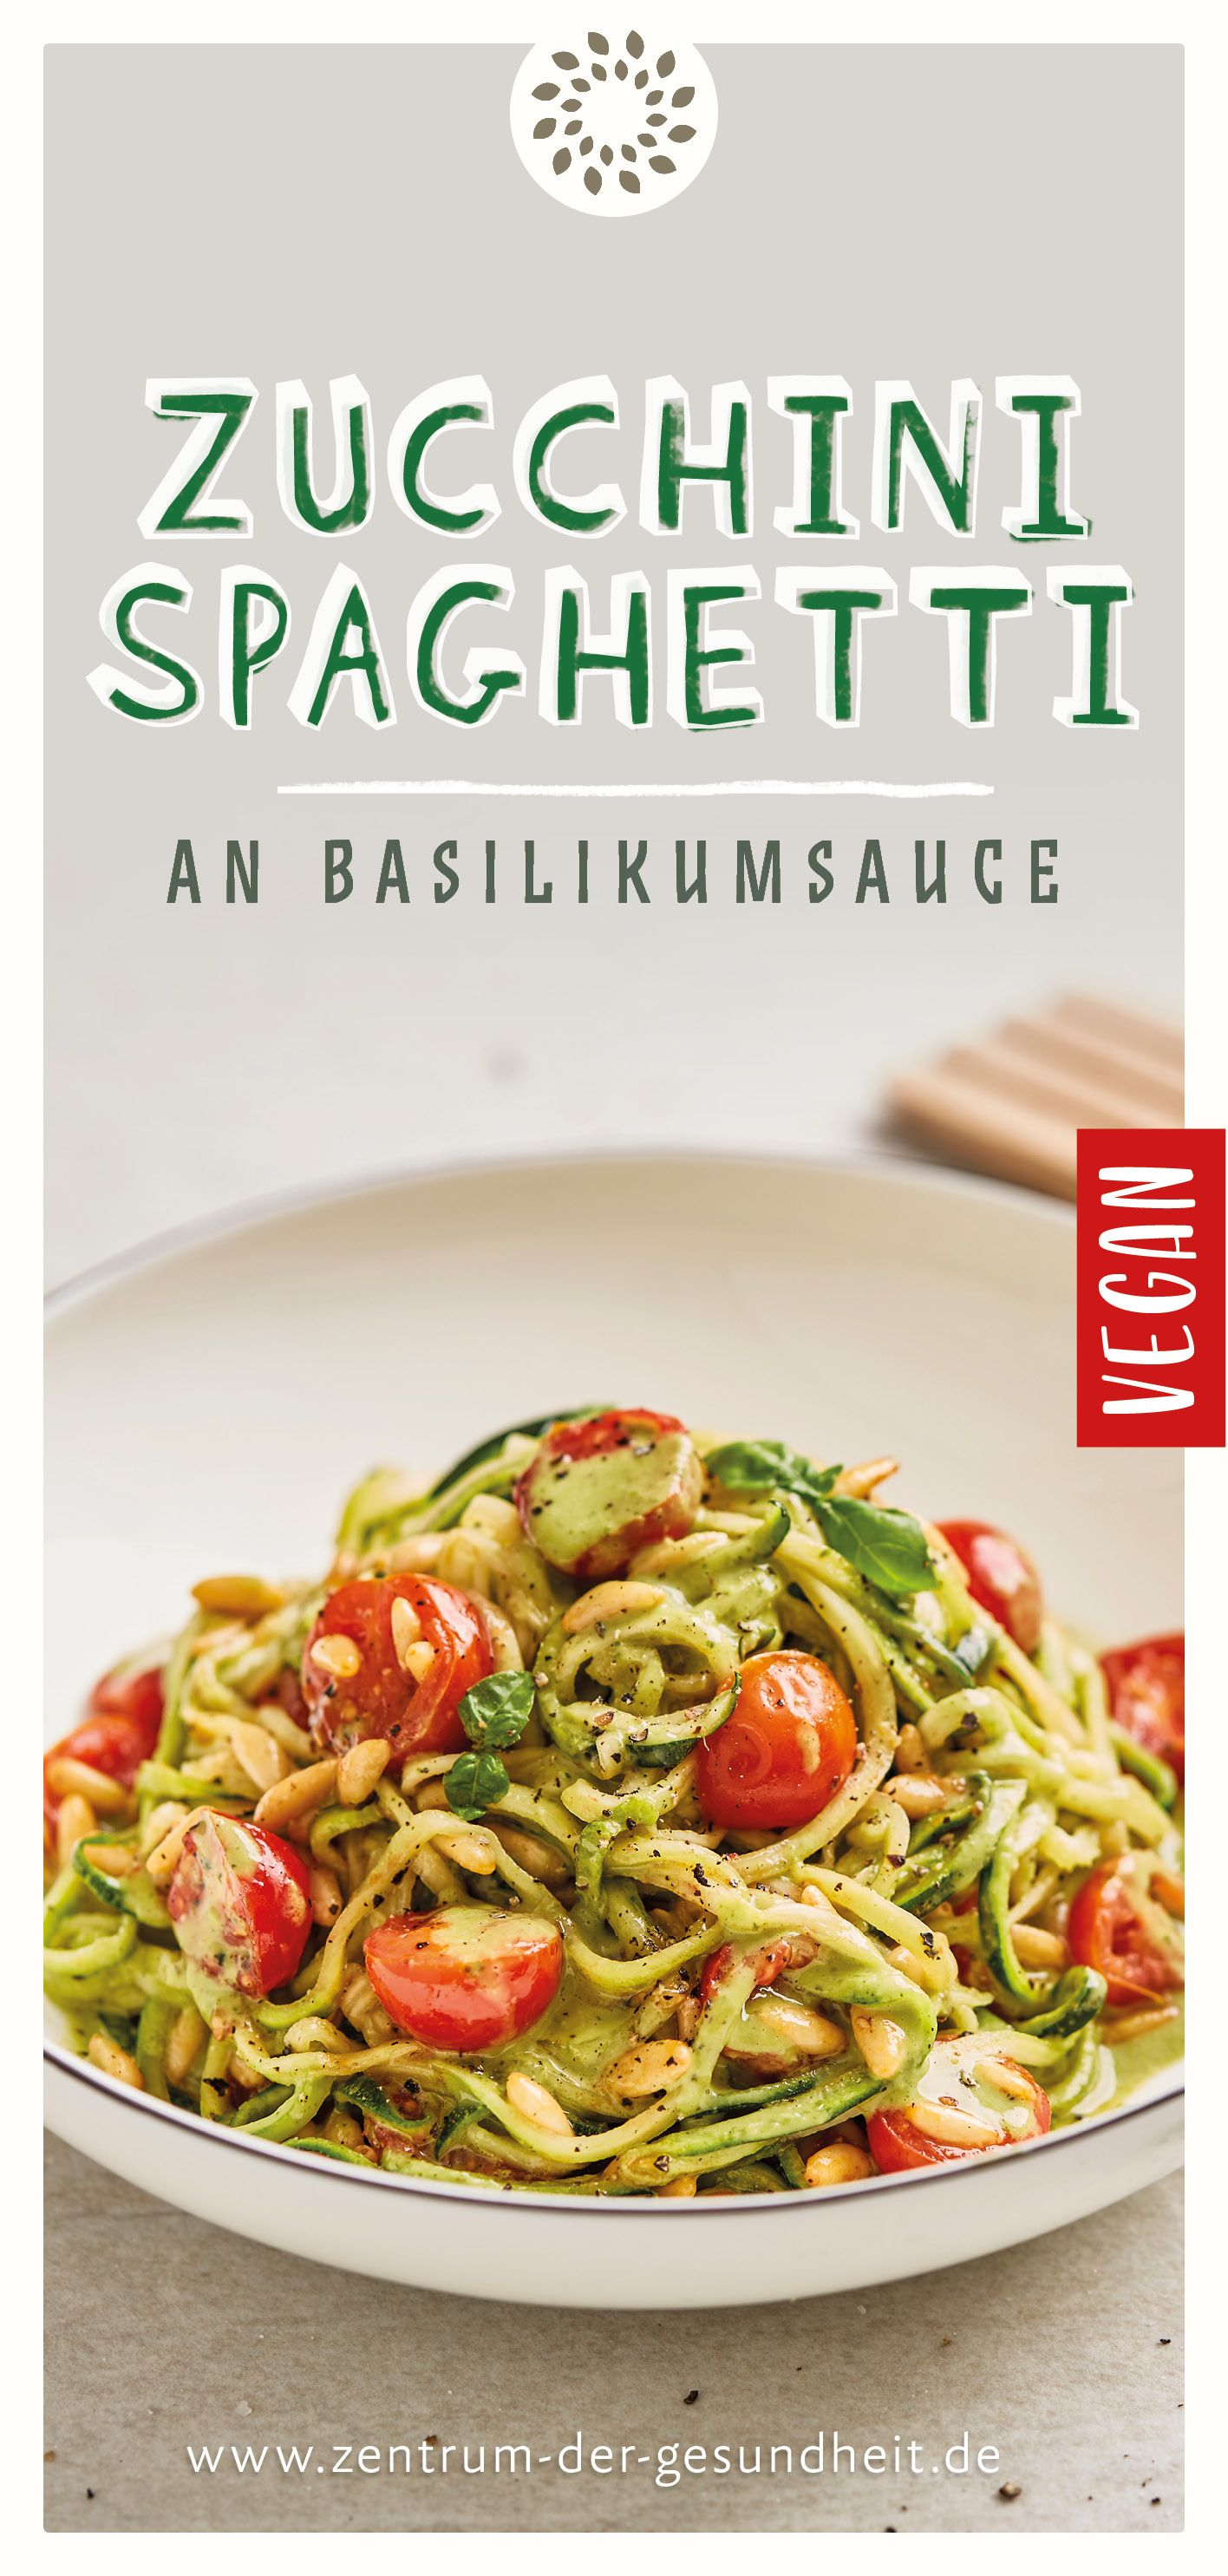 Photo of Courgette spaghetti with basil sauce